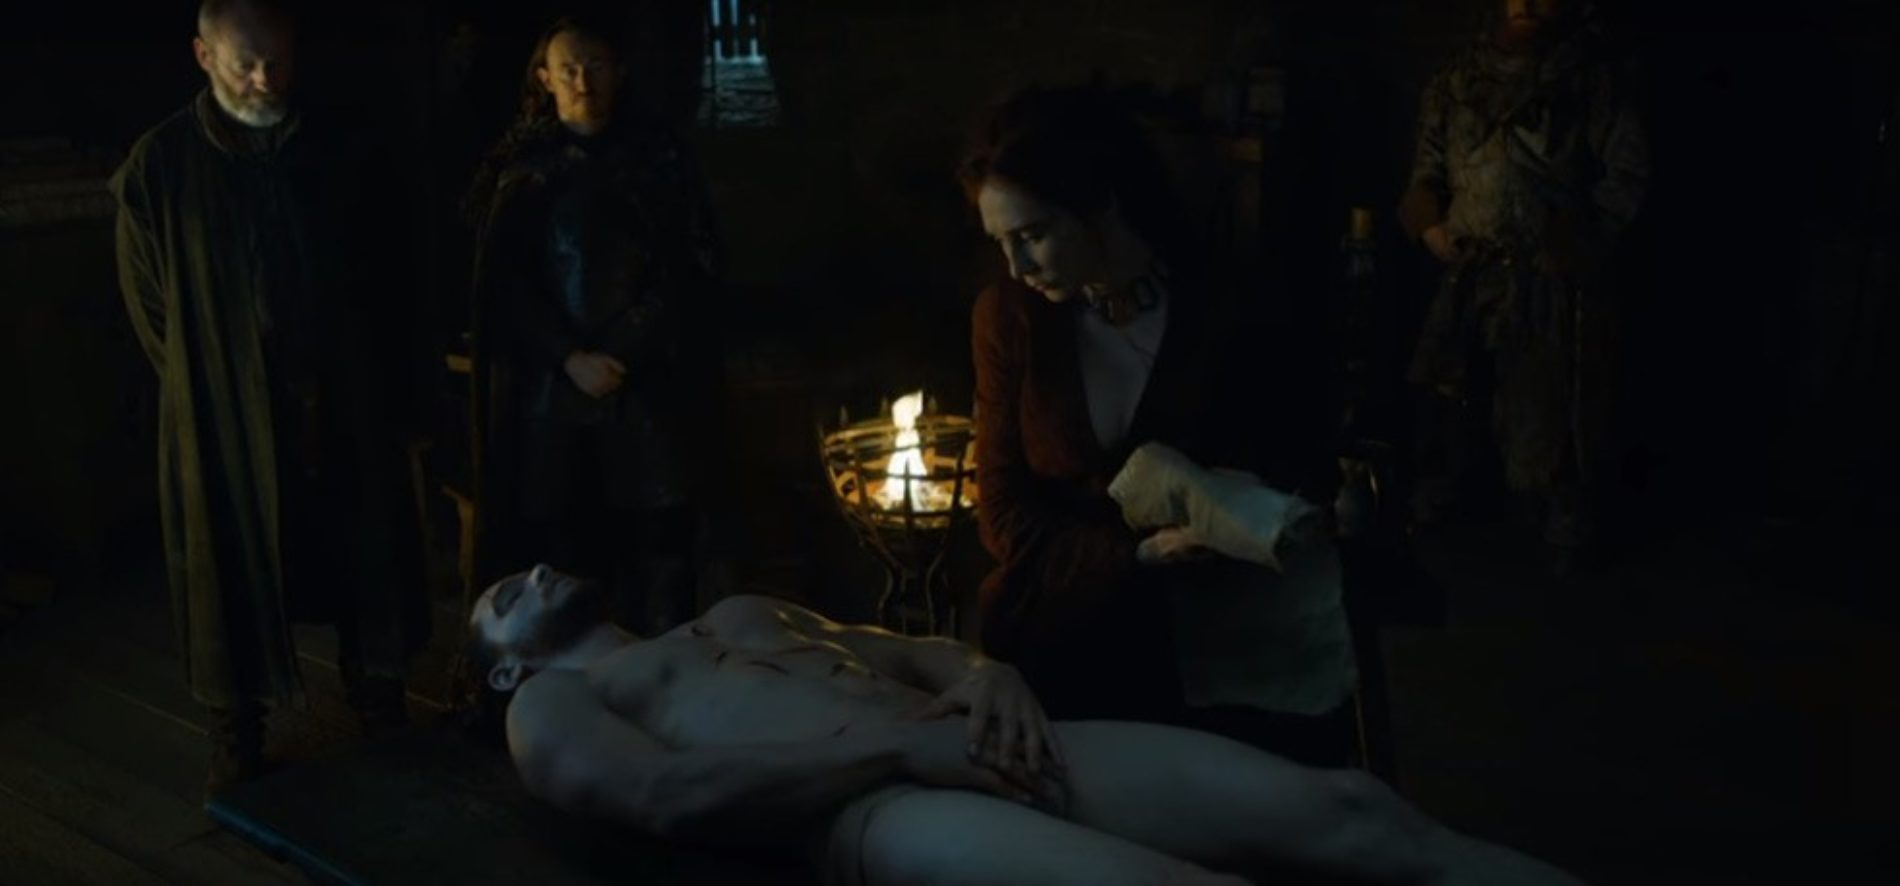 Bloopers for 'Game Of Thrones' Season 6 to ease your post-show blues